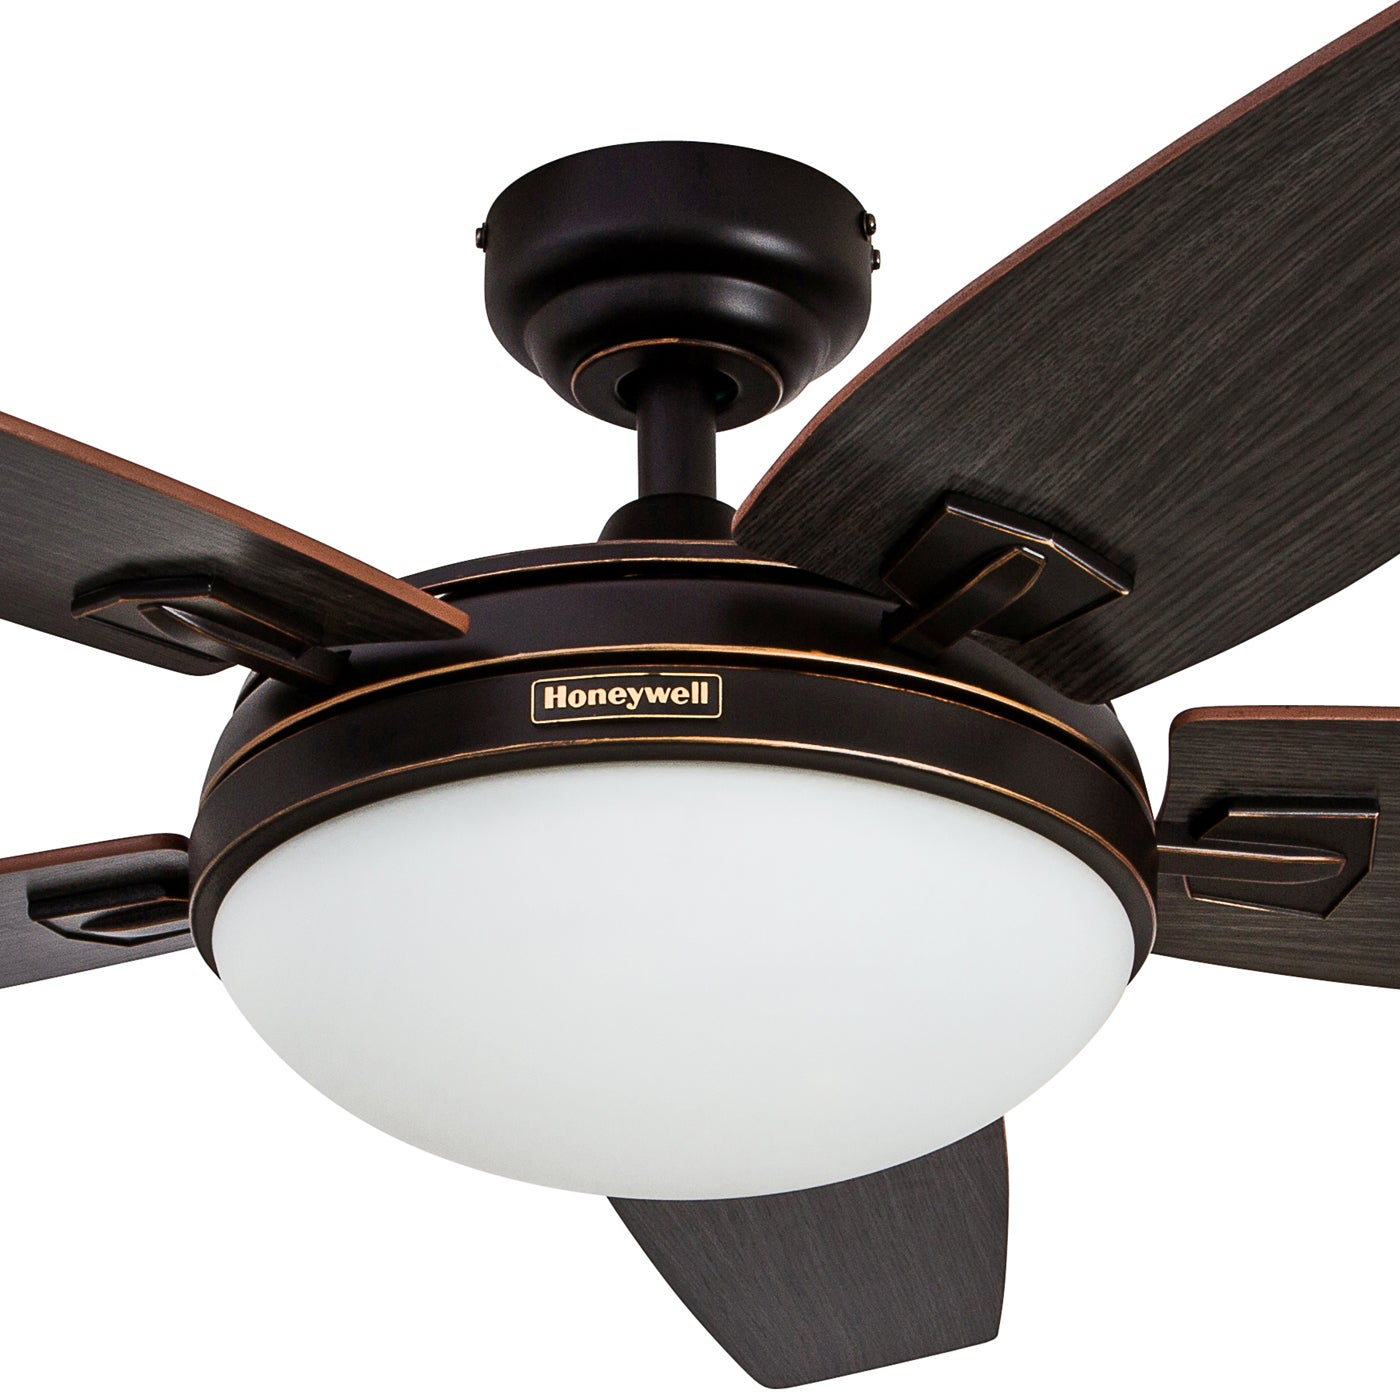 48 honeywell carmel oil rubbed bronze ceiling fan with integrated 48 honeywell carmel oil rubbed bronze ceiling fan with integrated light and remote free shipping today overstock 22393897 aloadofball Choice Image